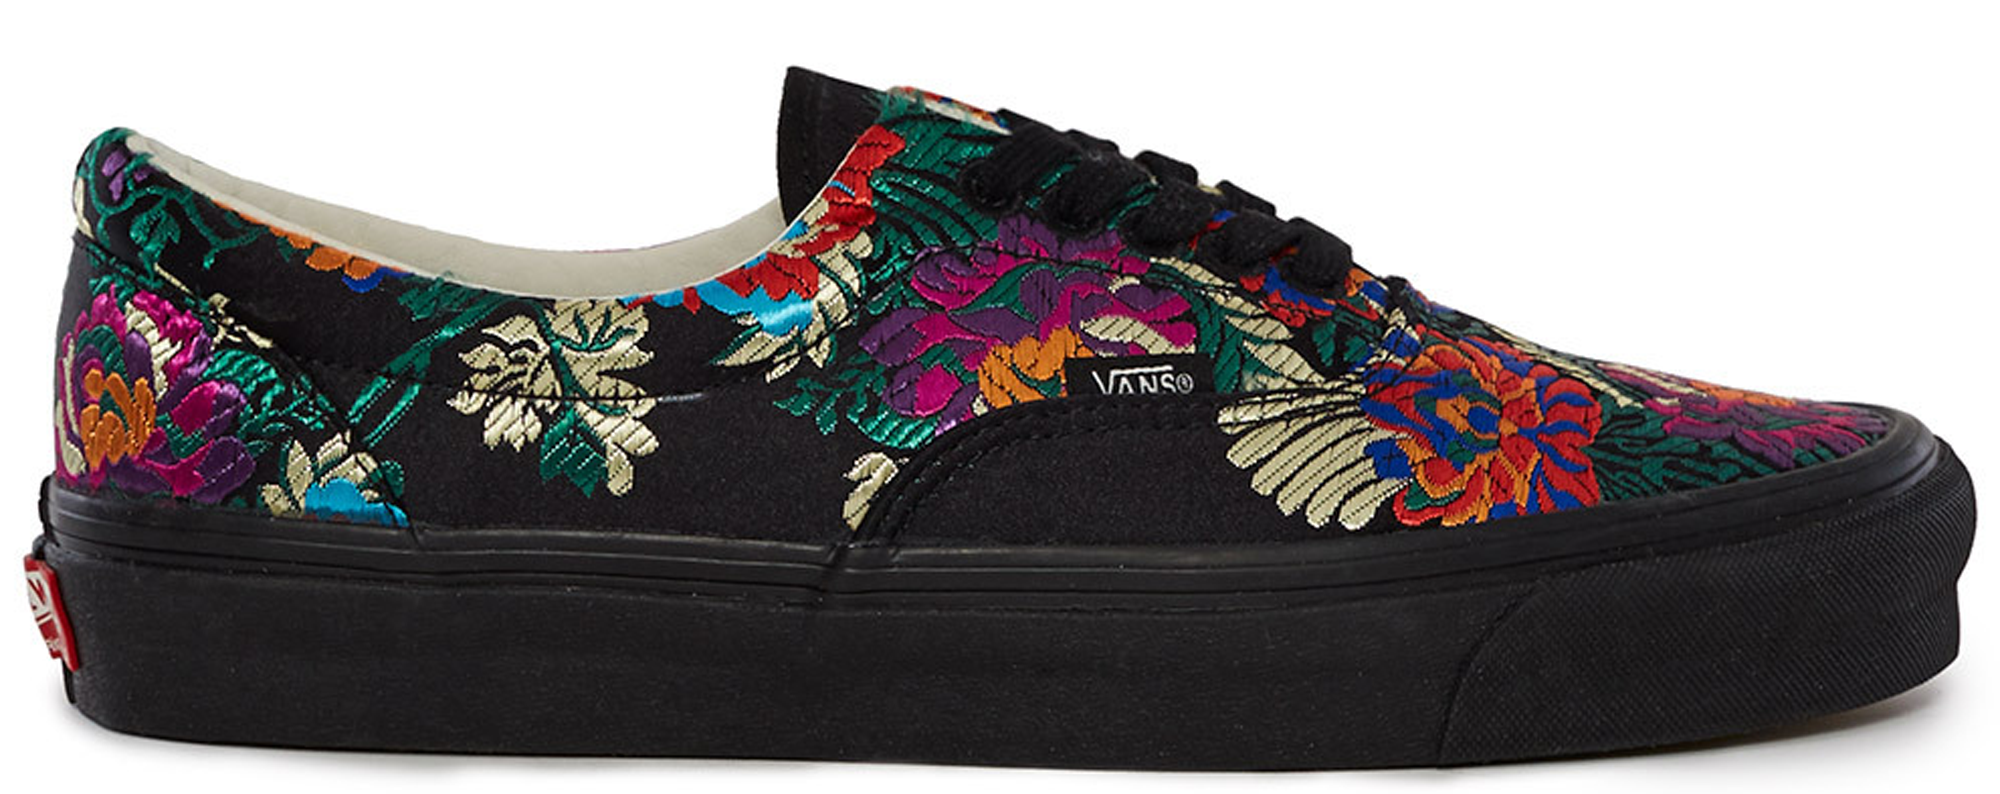 Vans Era Opening Ceremony Satin Floral Black